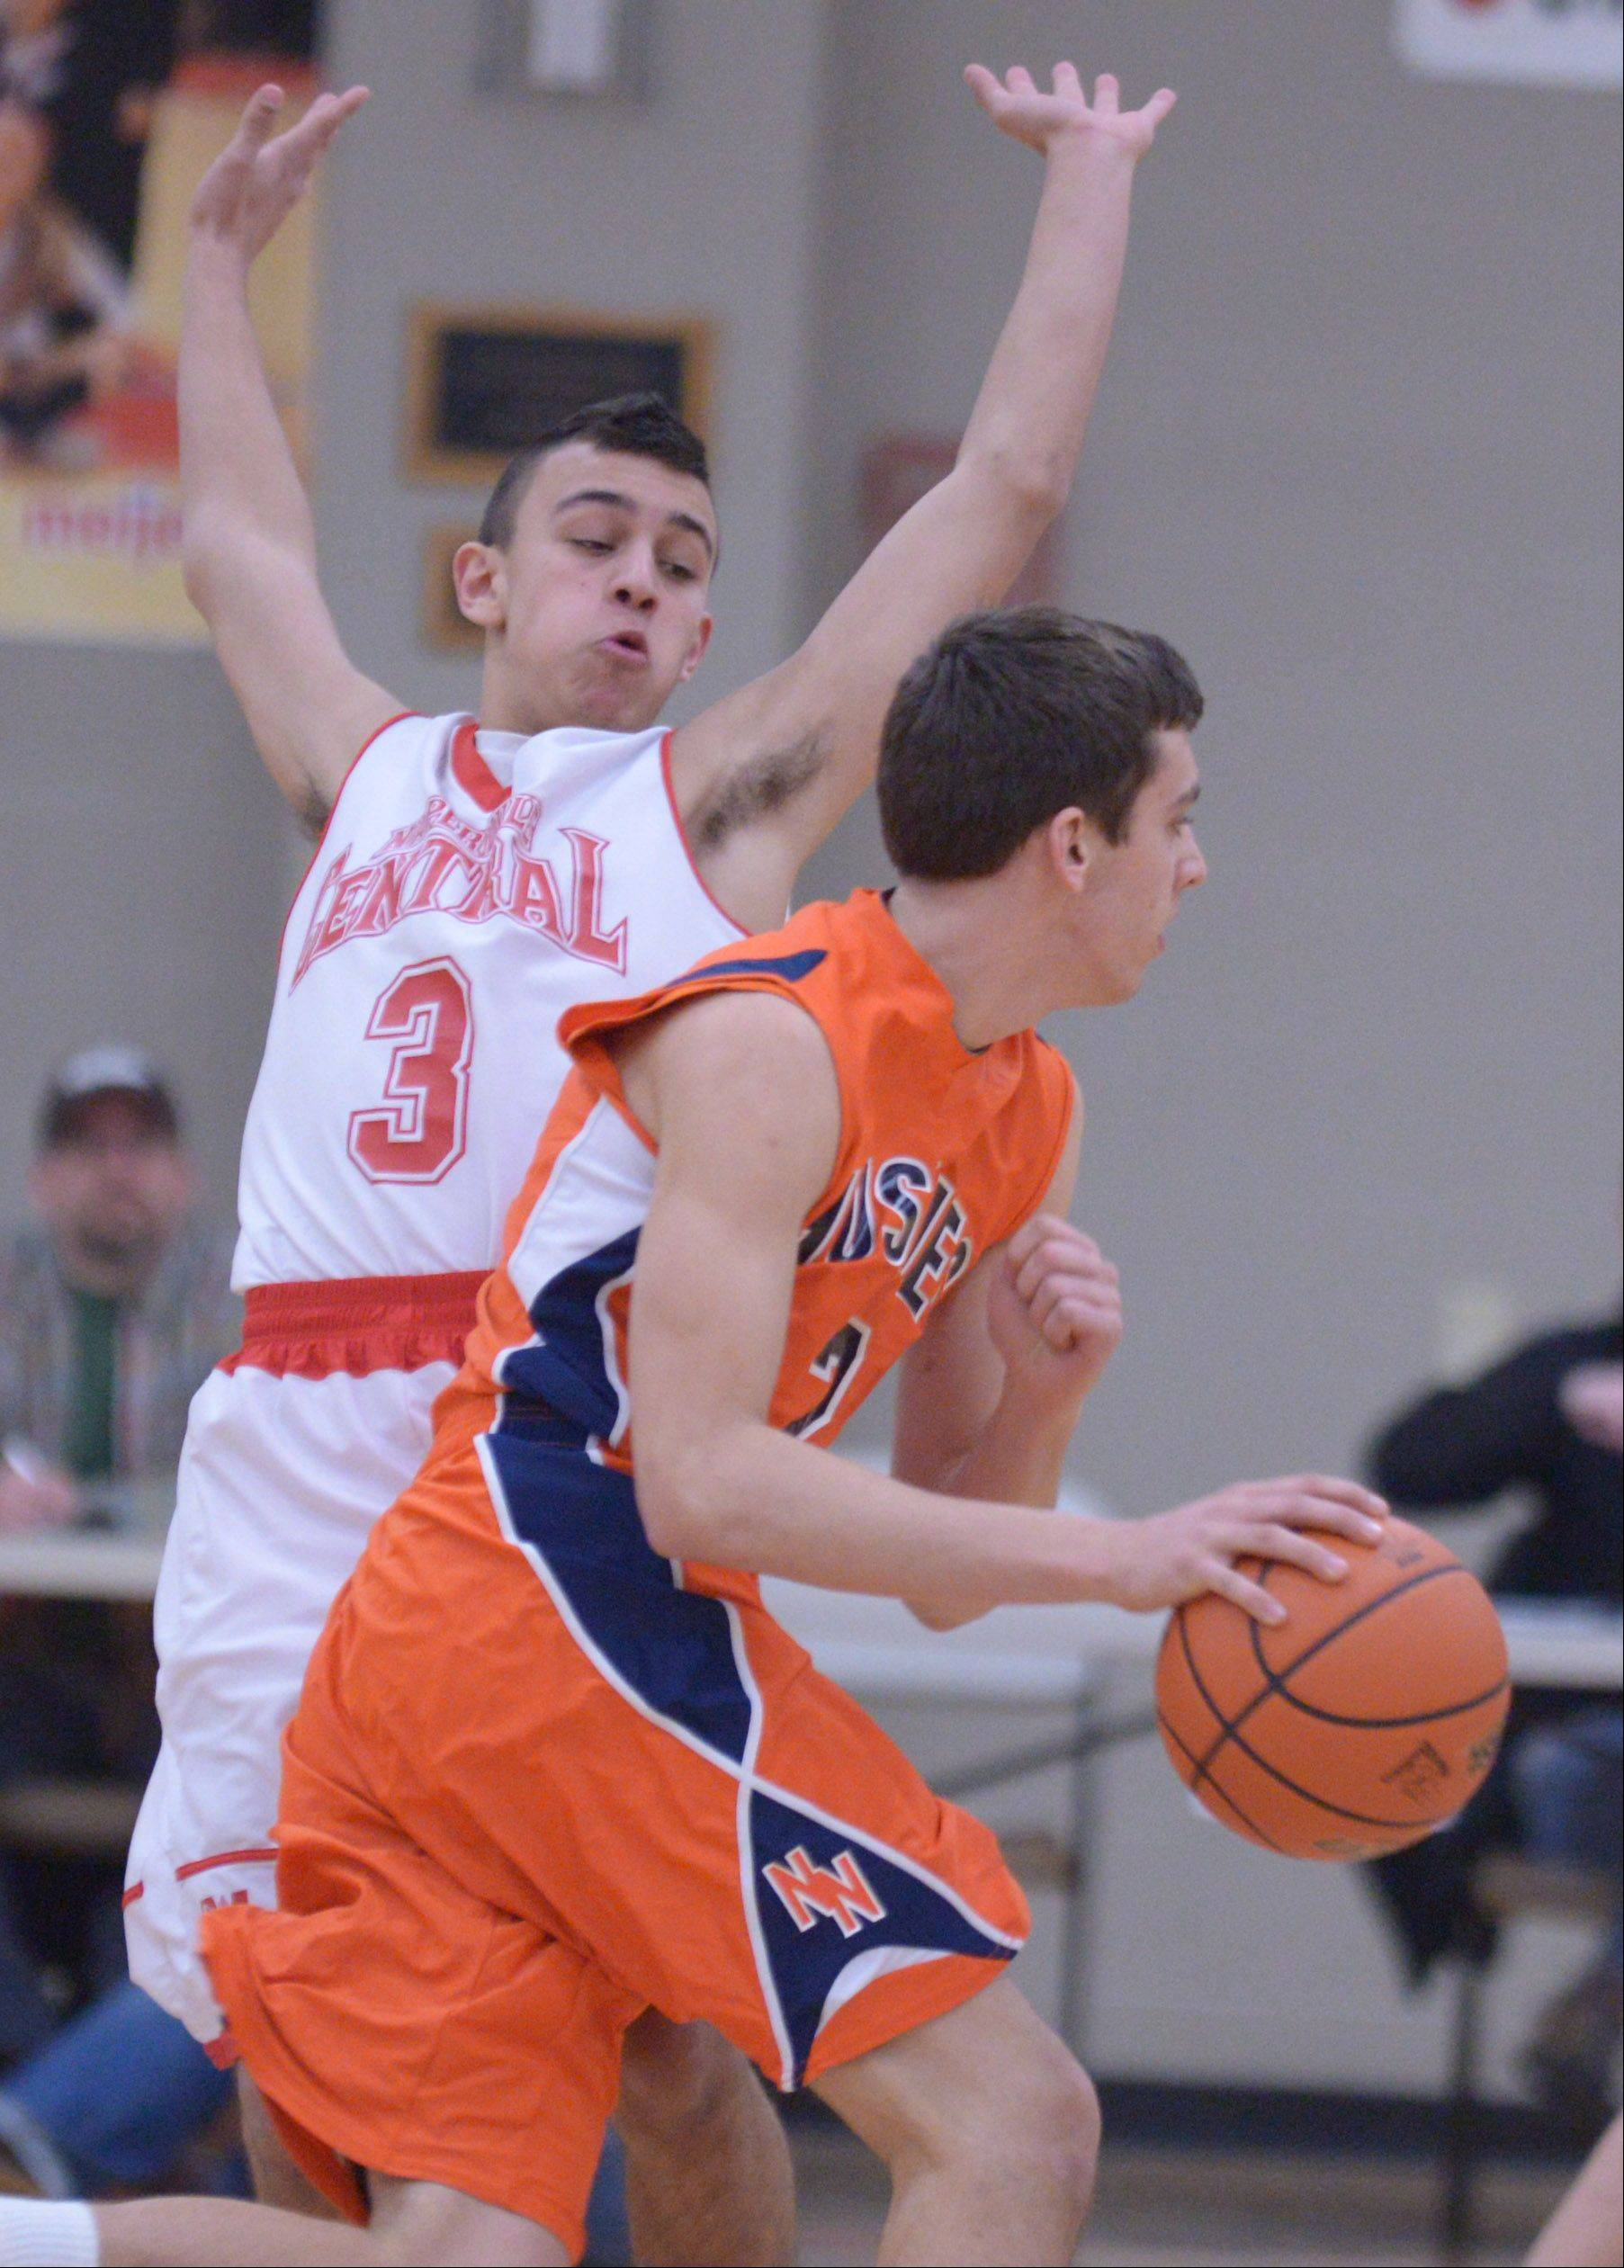 Anthony Rehayem of Naperville North pushes his way past Nicky Lopez of Naperville Central. This took place during the Naperville North vs. Naperville Central Class 4A Benet boys basketball regional semifinal game Thursady.